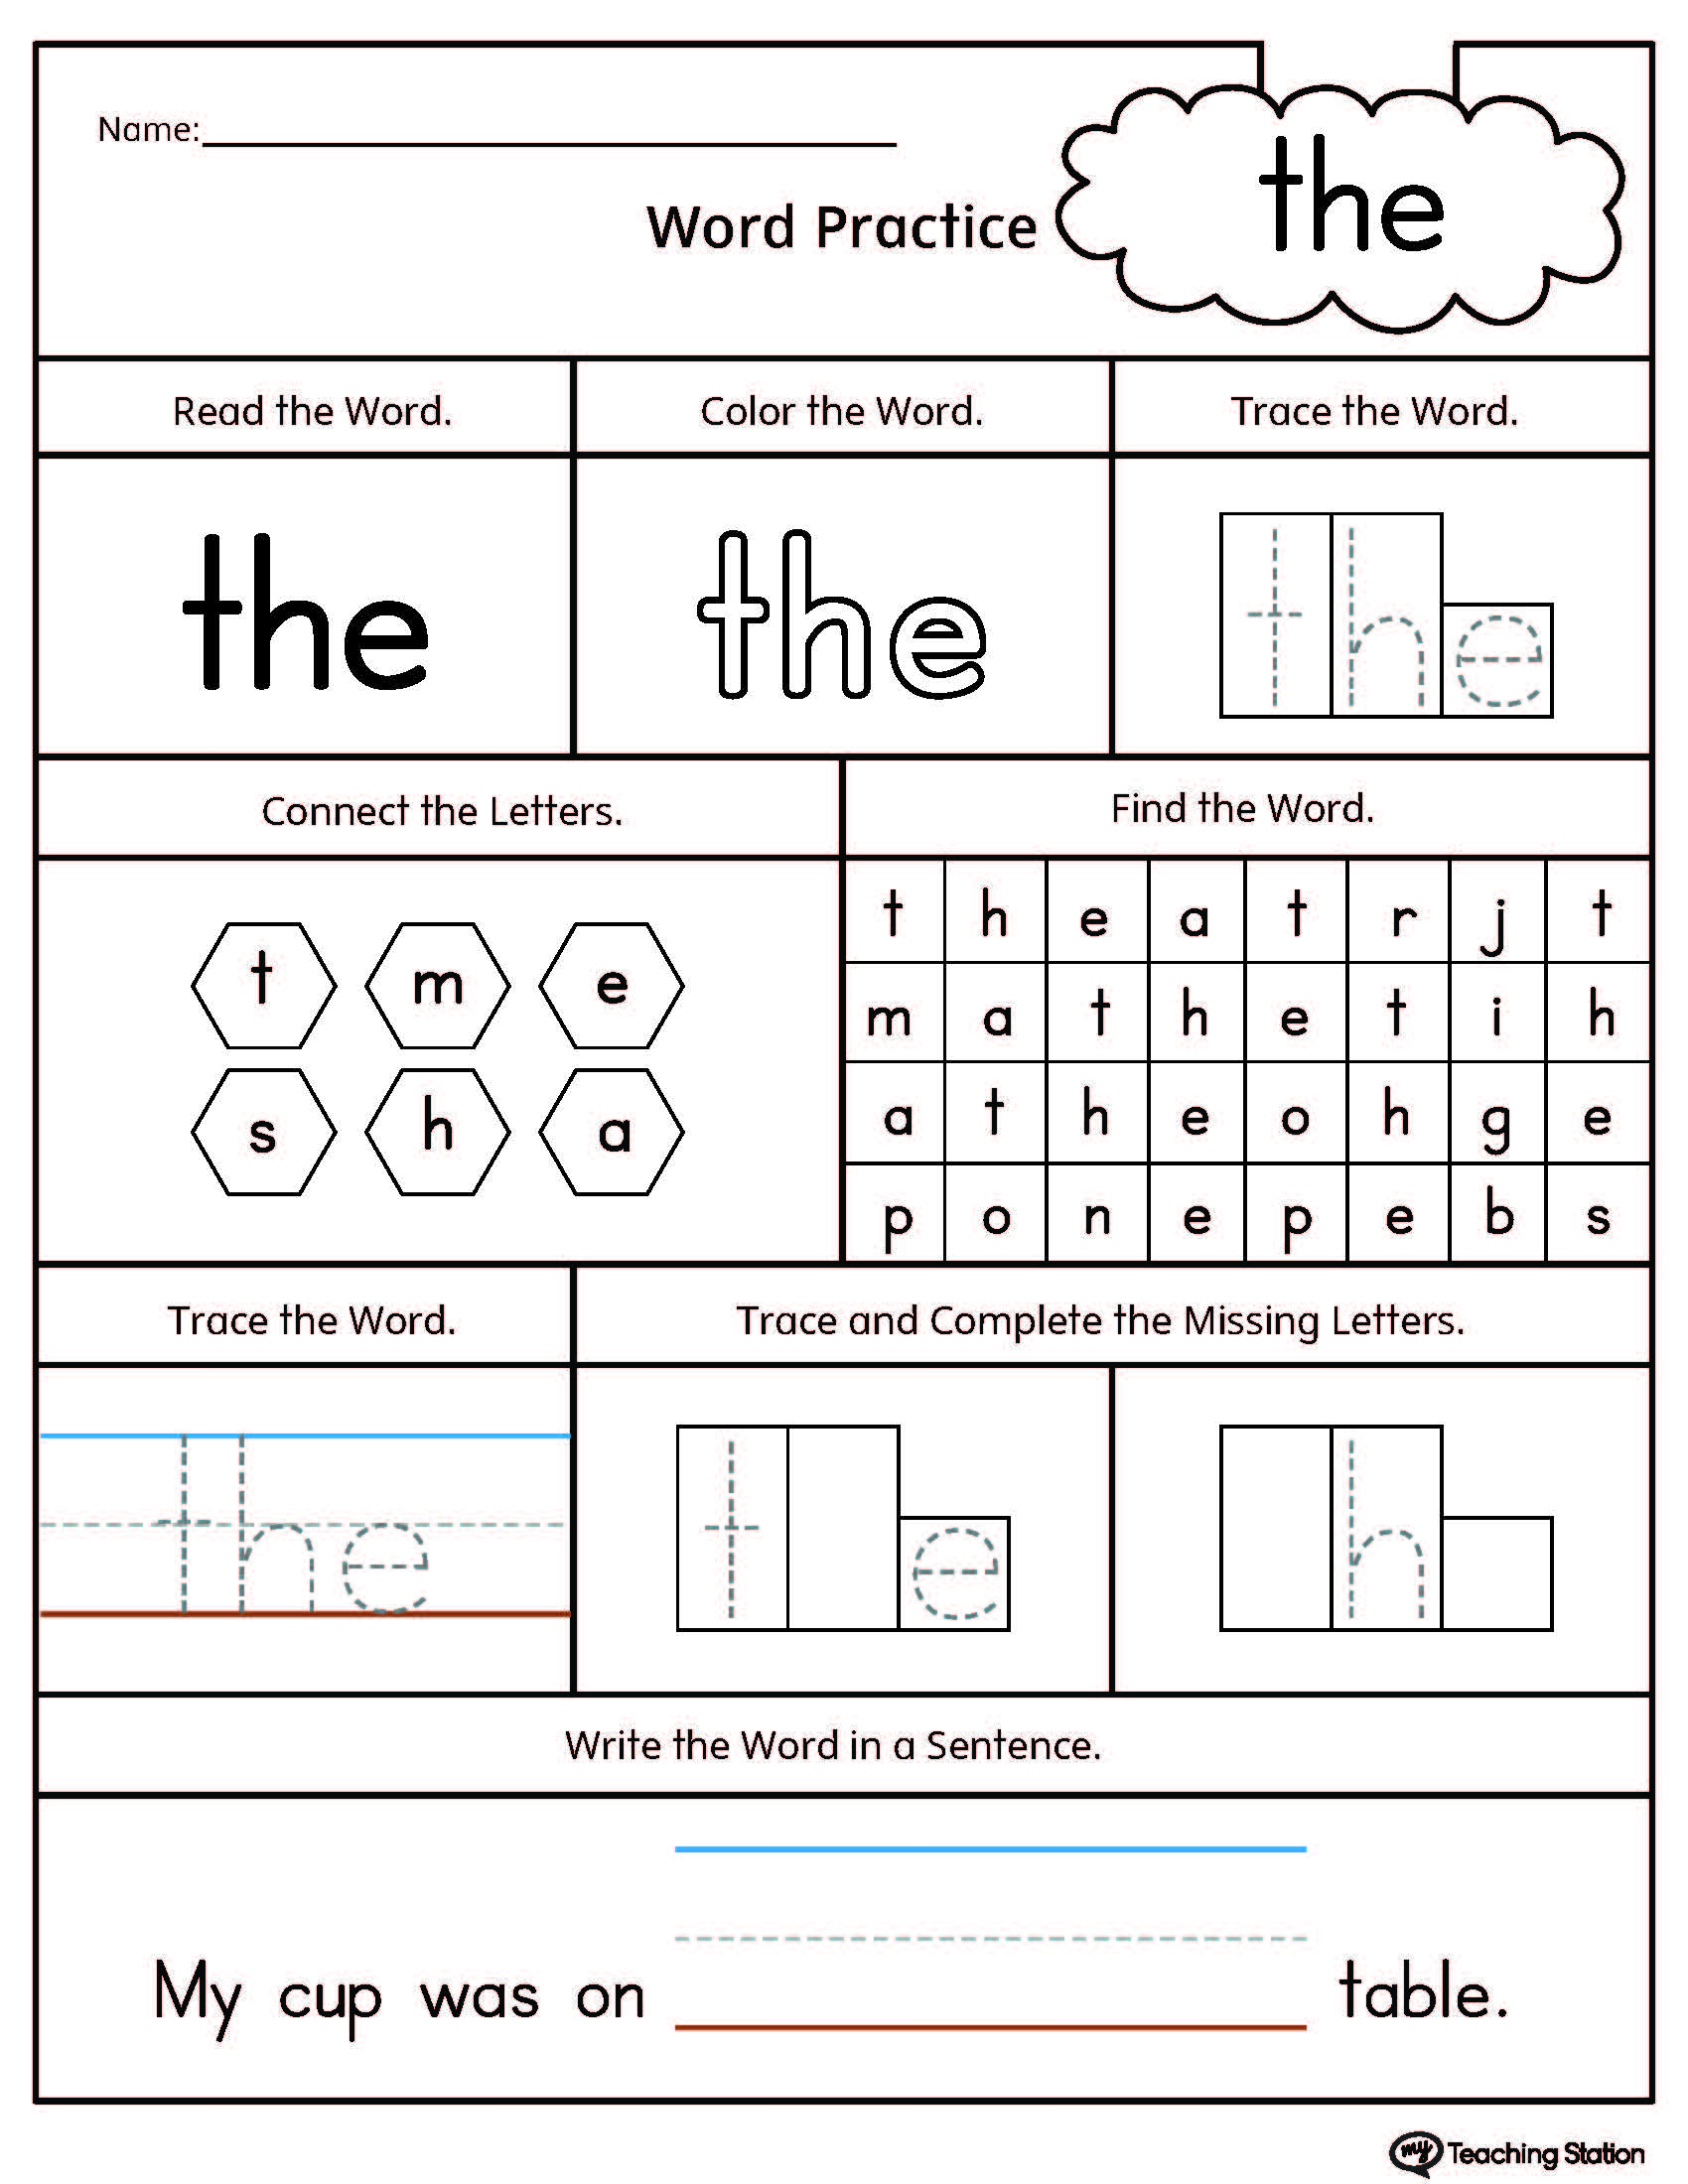 Worksheets Sight Words Worksheets Free high frequency words printable worksheets myteachingstation com sight word the worksheet